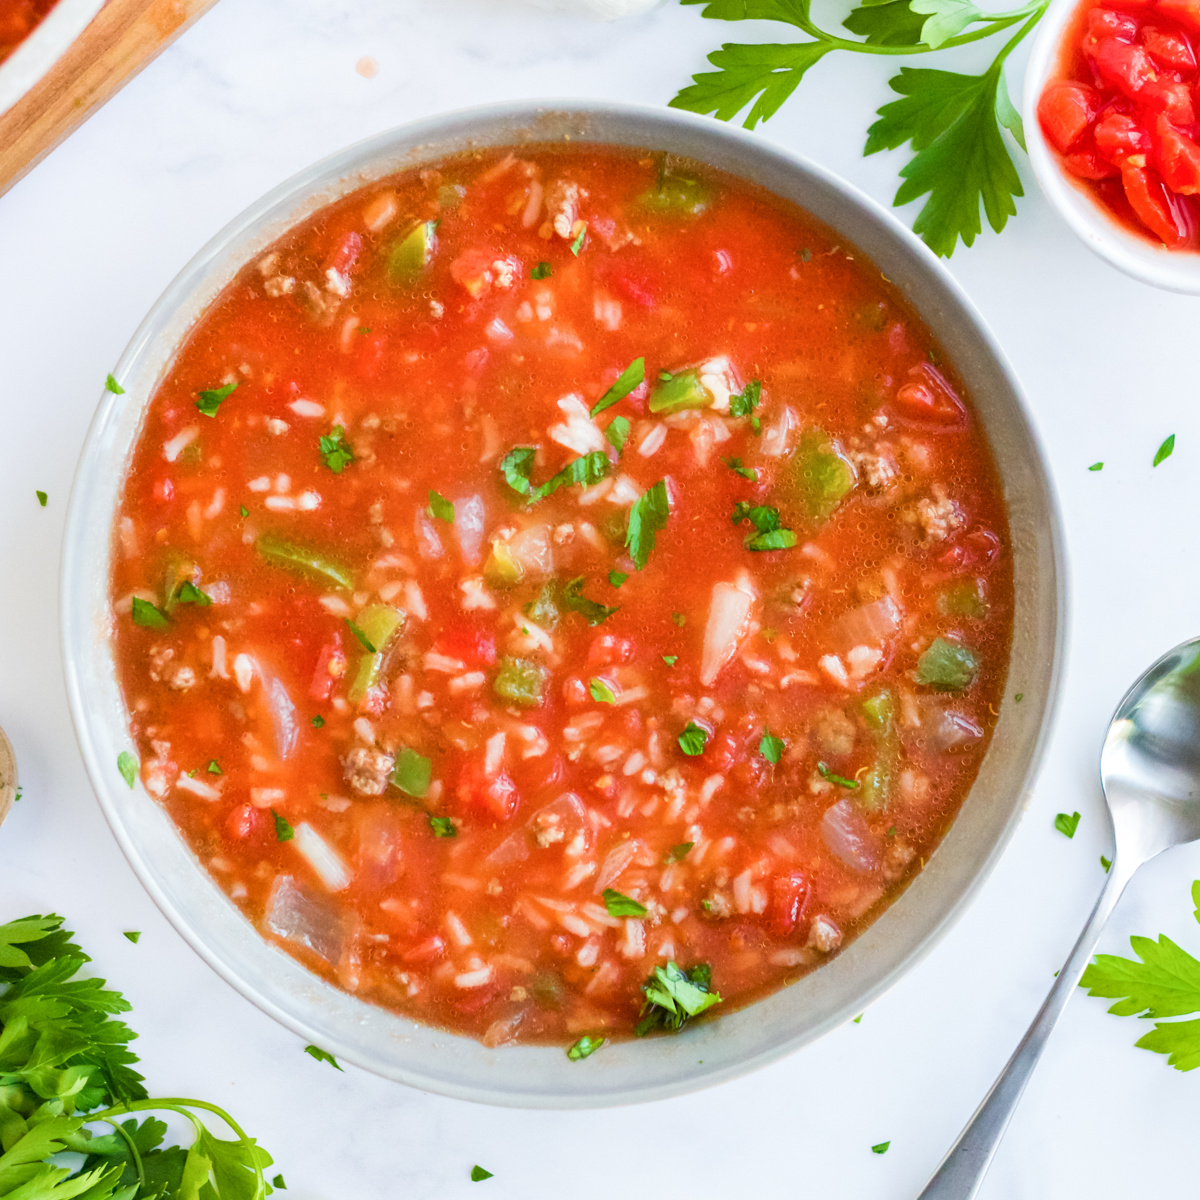 Overhead of Stuffed Pepper Soup in bowl square image